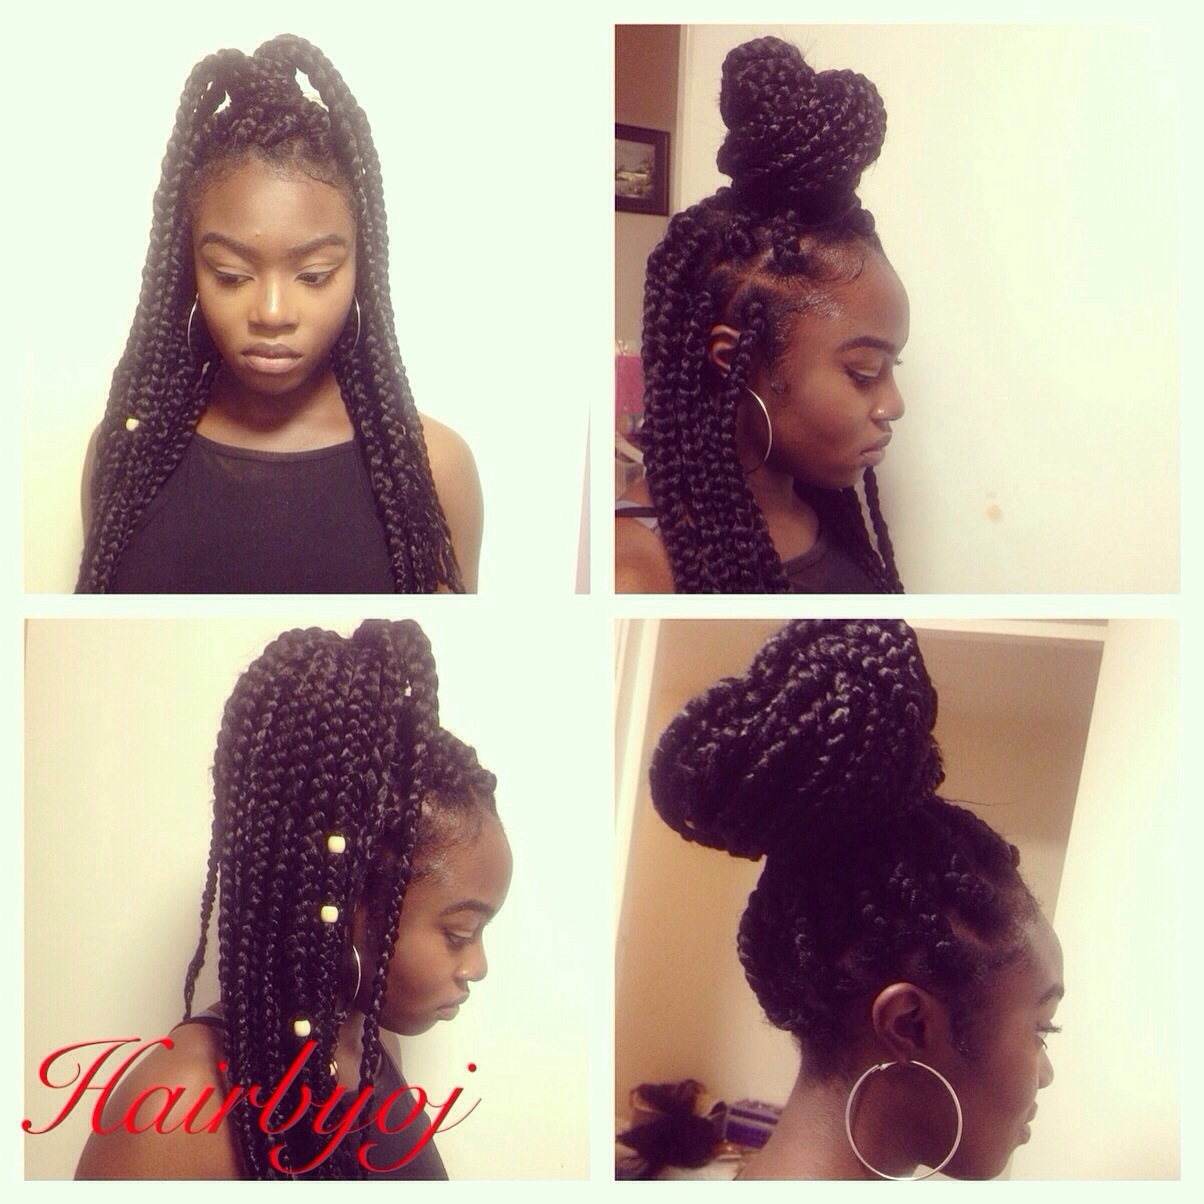 Crochet Box Braids With Leave Out : Box braids styling options ? hairbyoj